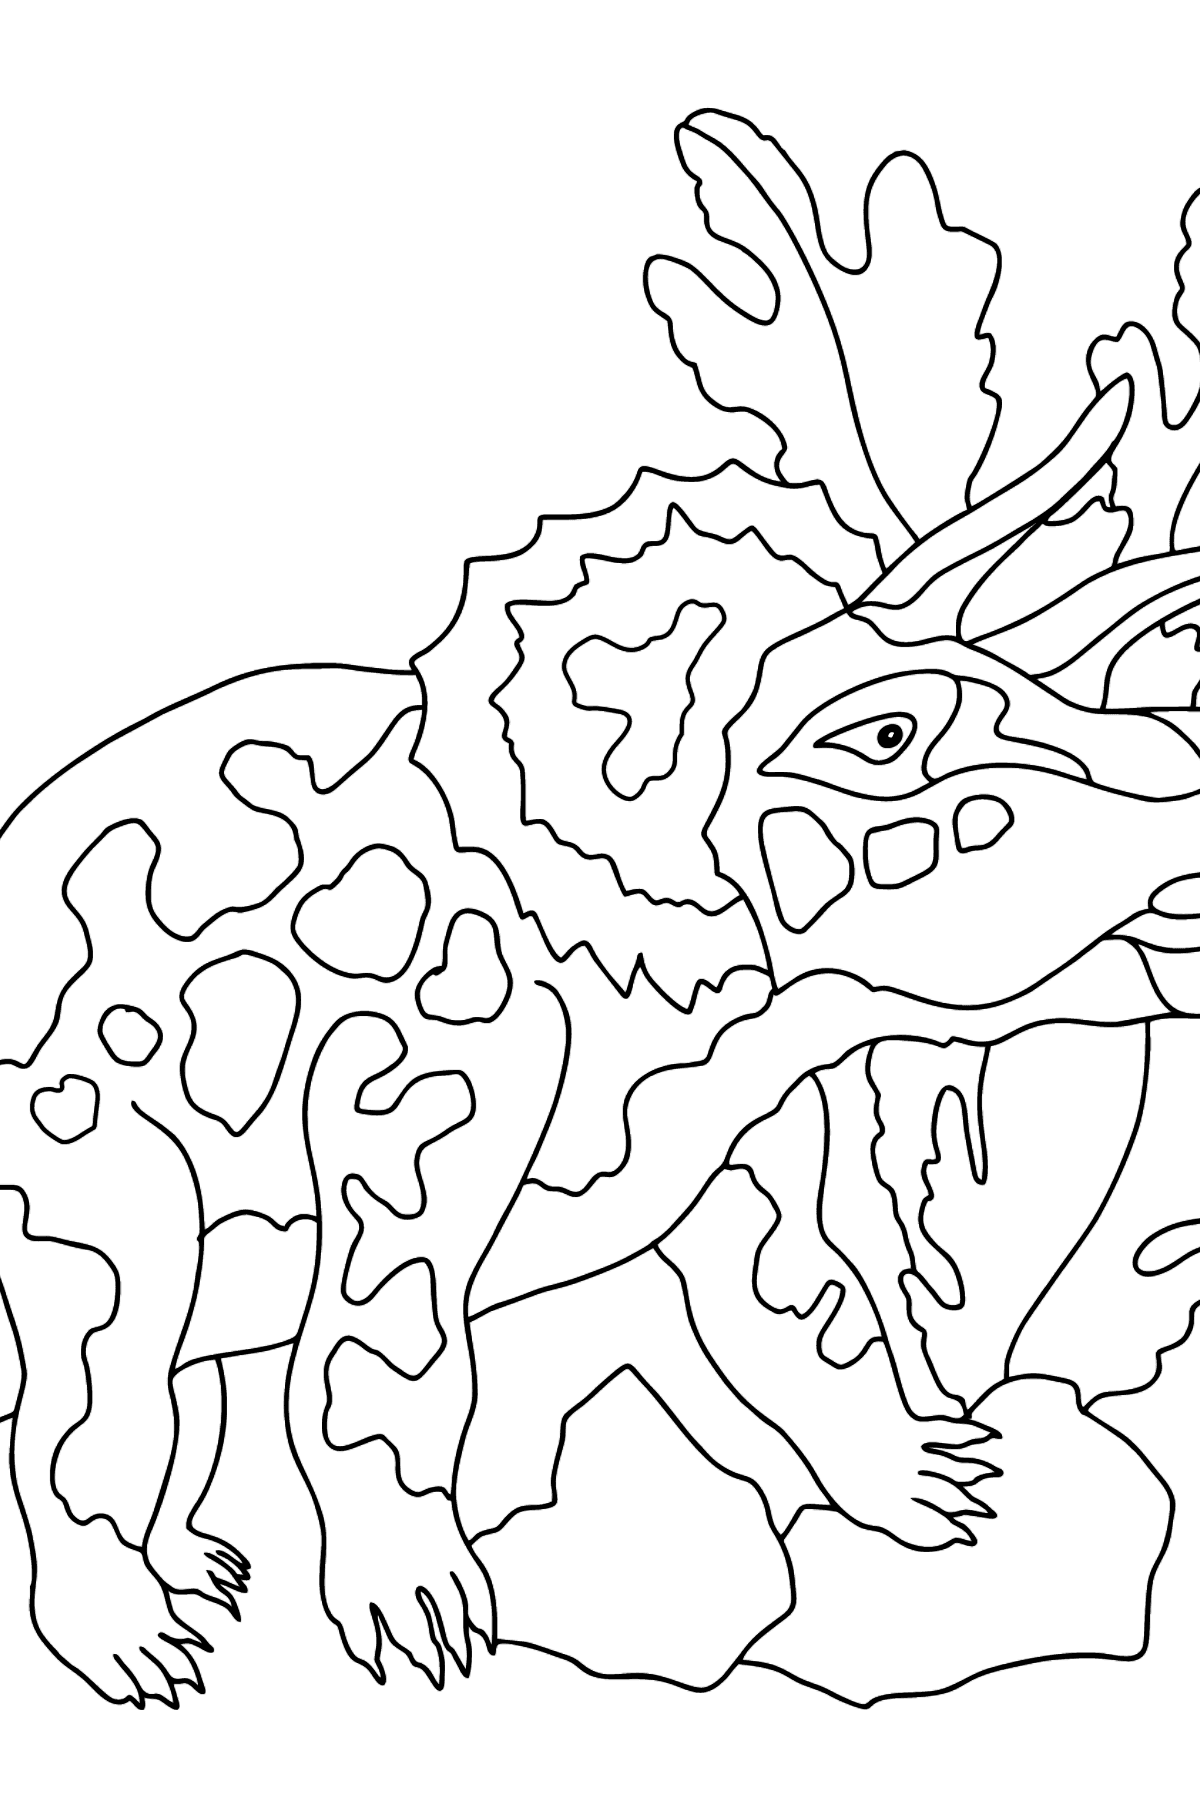 Coloring Page - Triceratops - A Grass-Eating Dinosaur - Coloring Pages for Kids